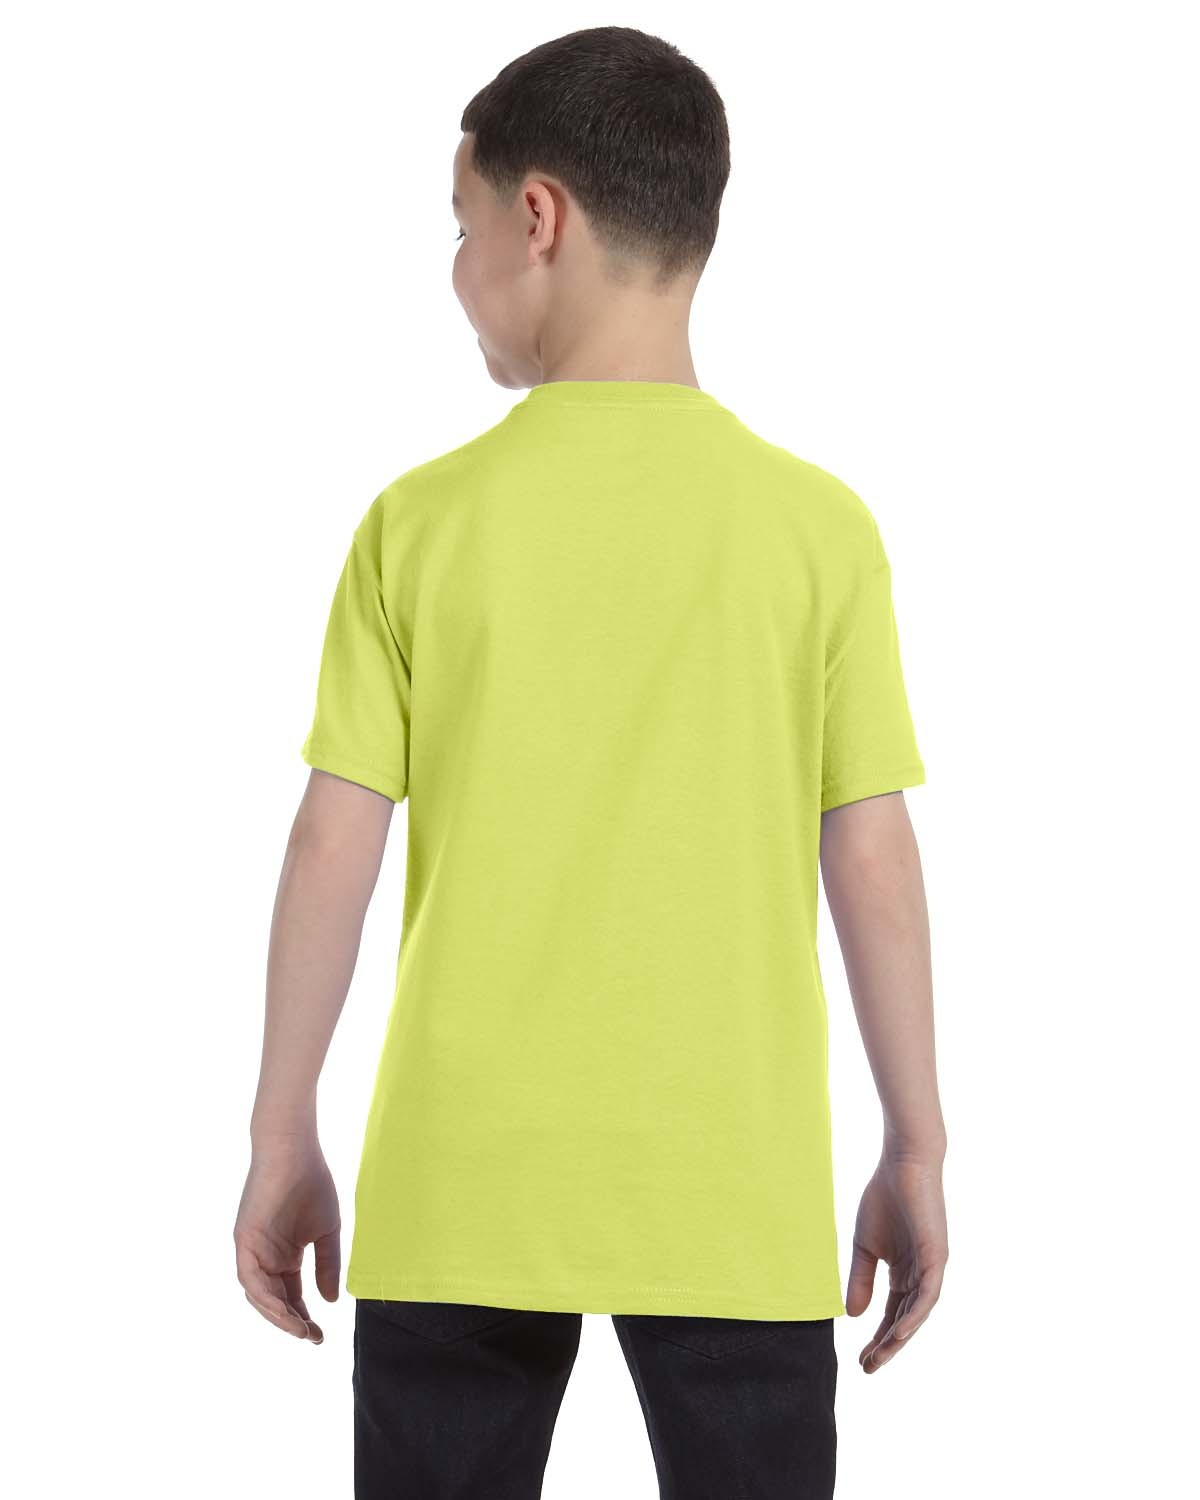 29B Jerzees SAFETY GREEN